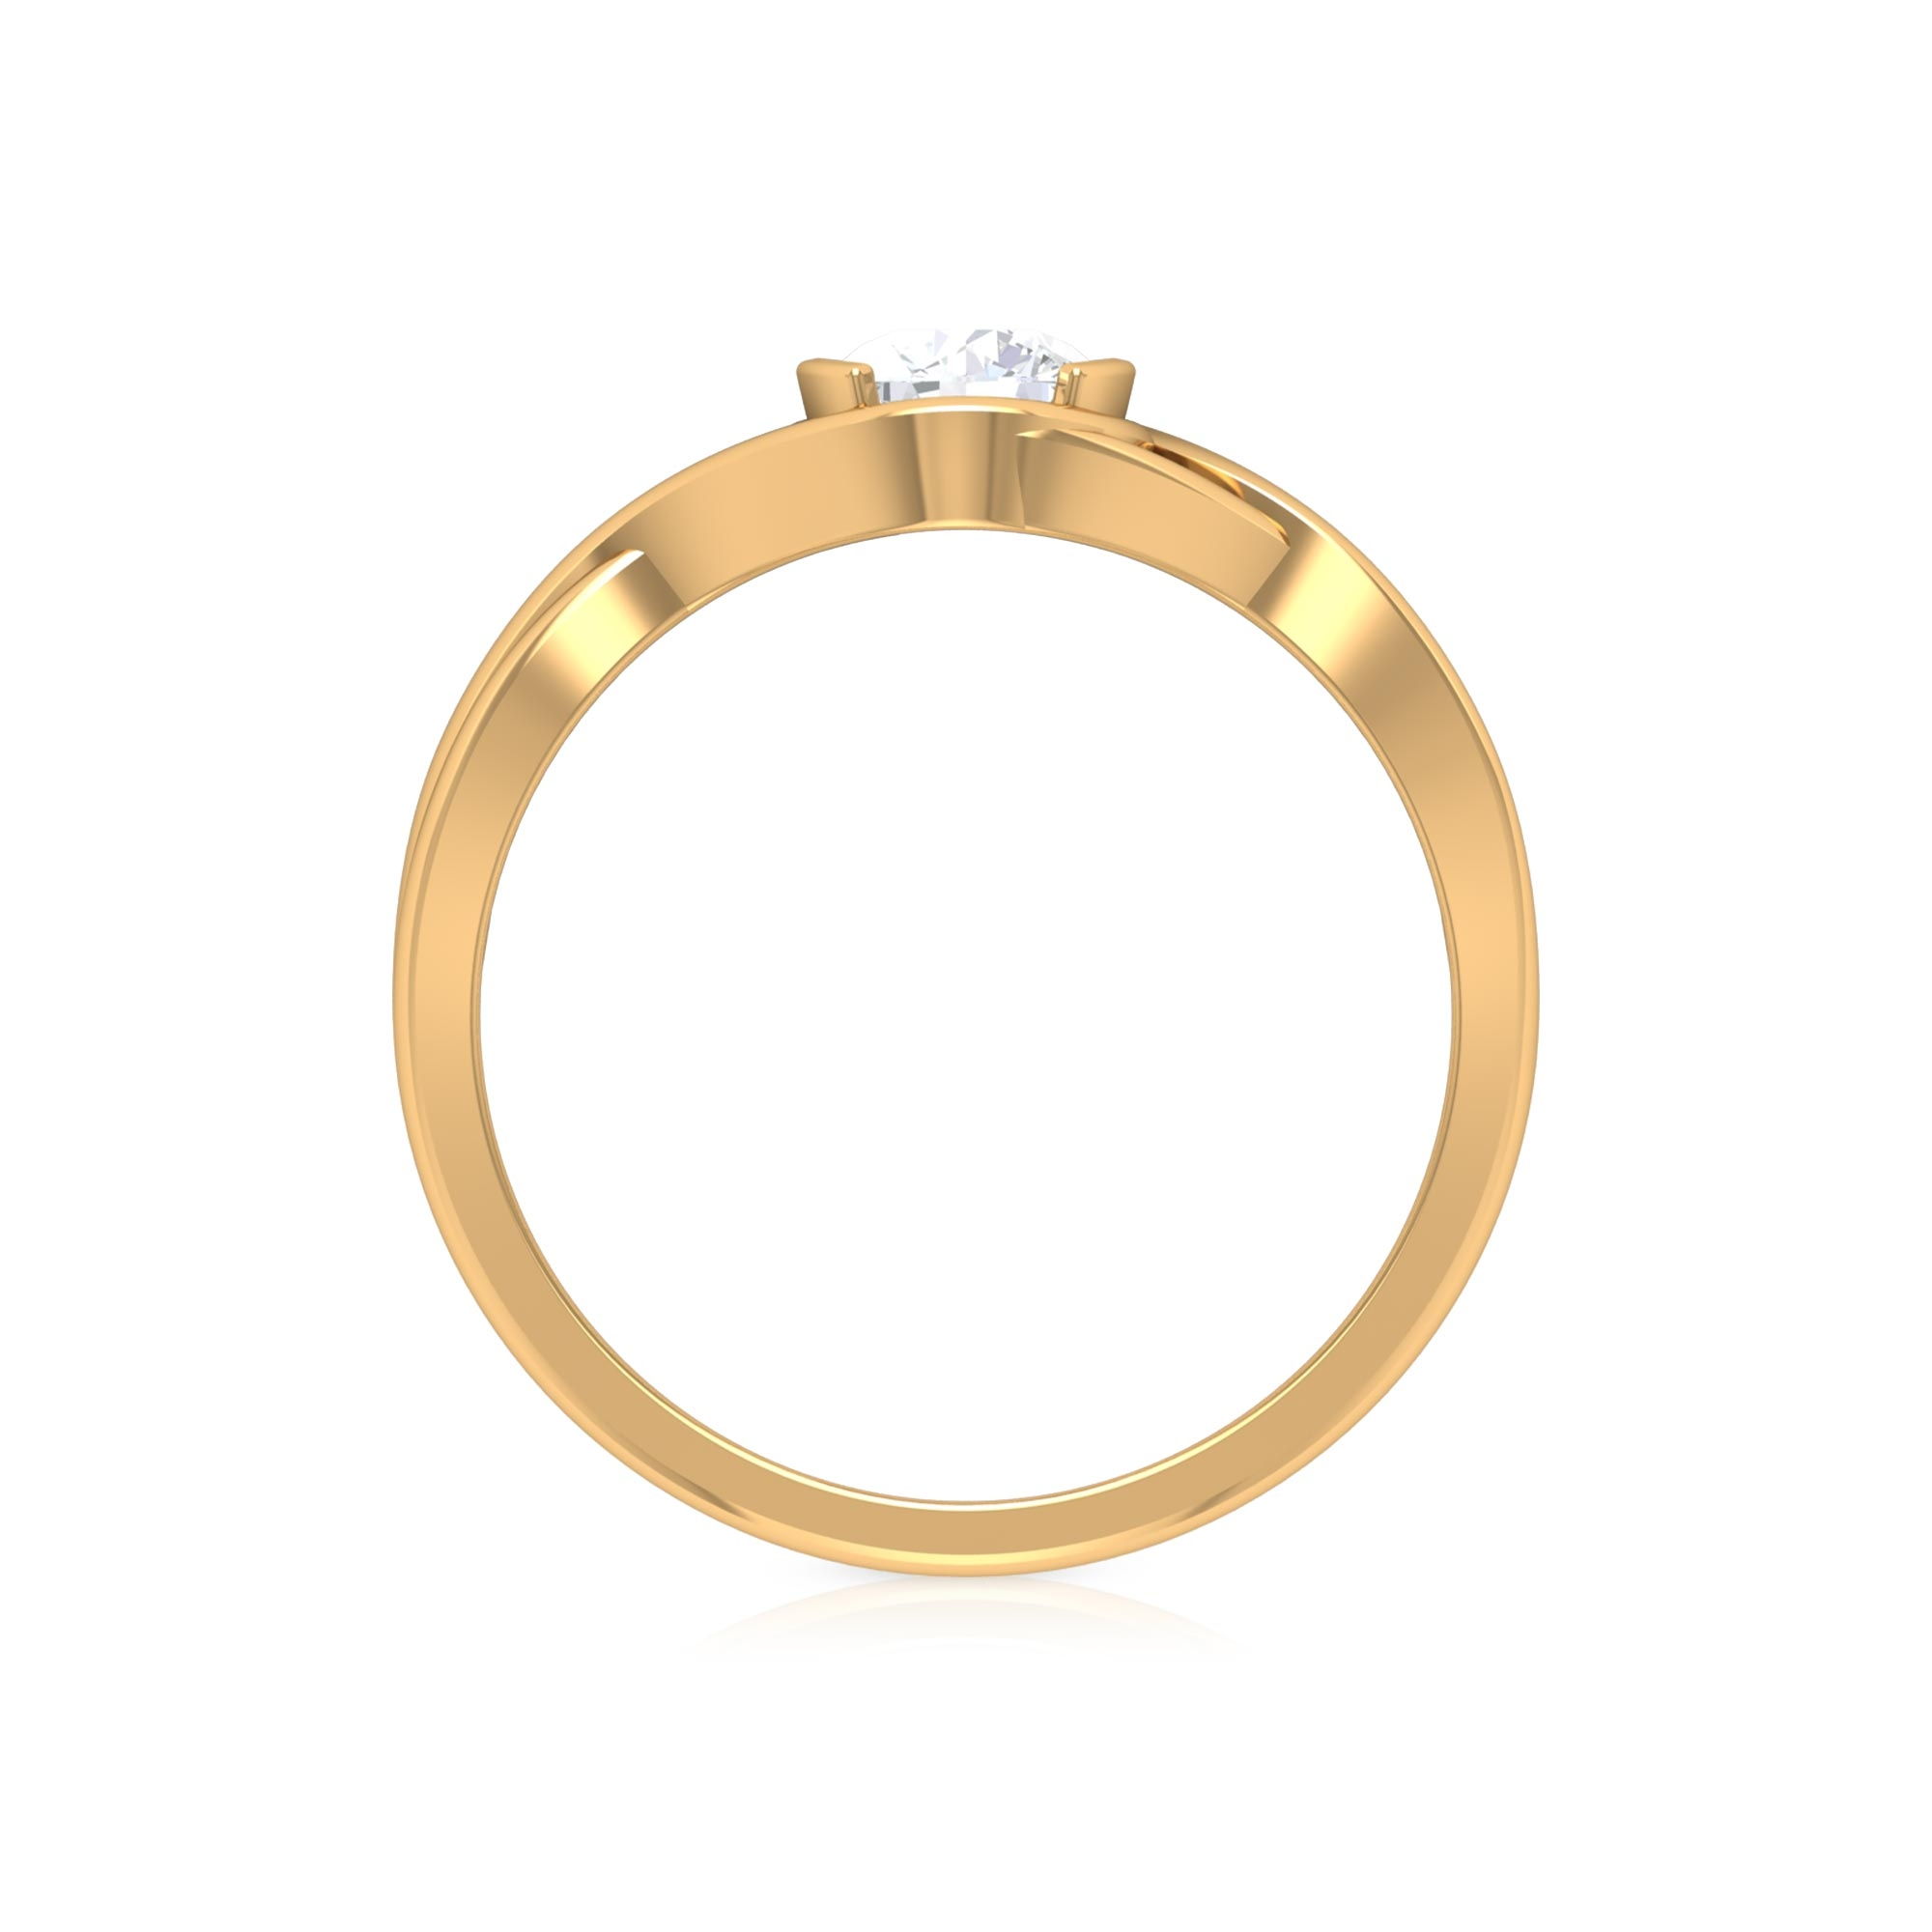 1/2 CT Solitaire Diamond Crossover Ring in Half Bezel Setting